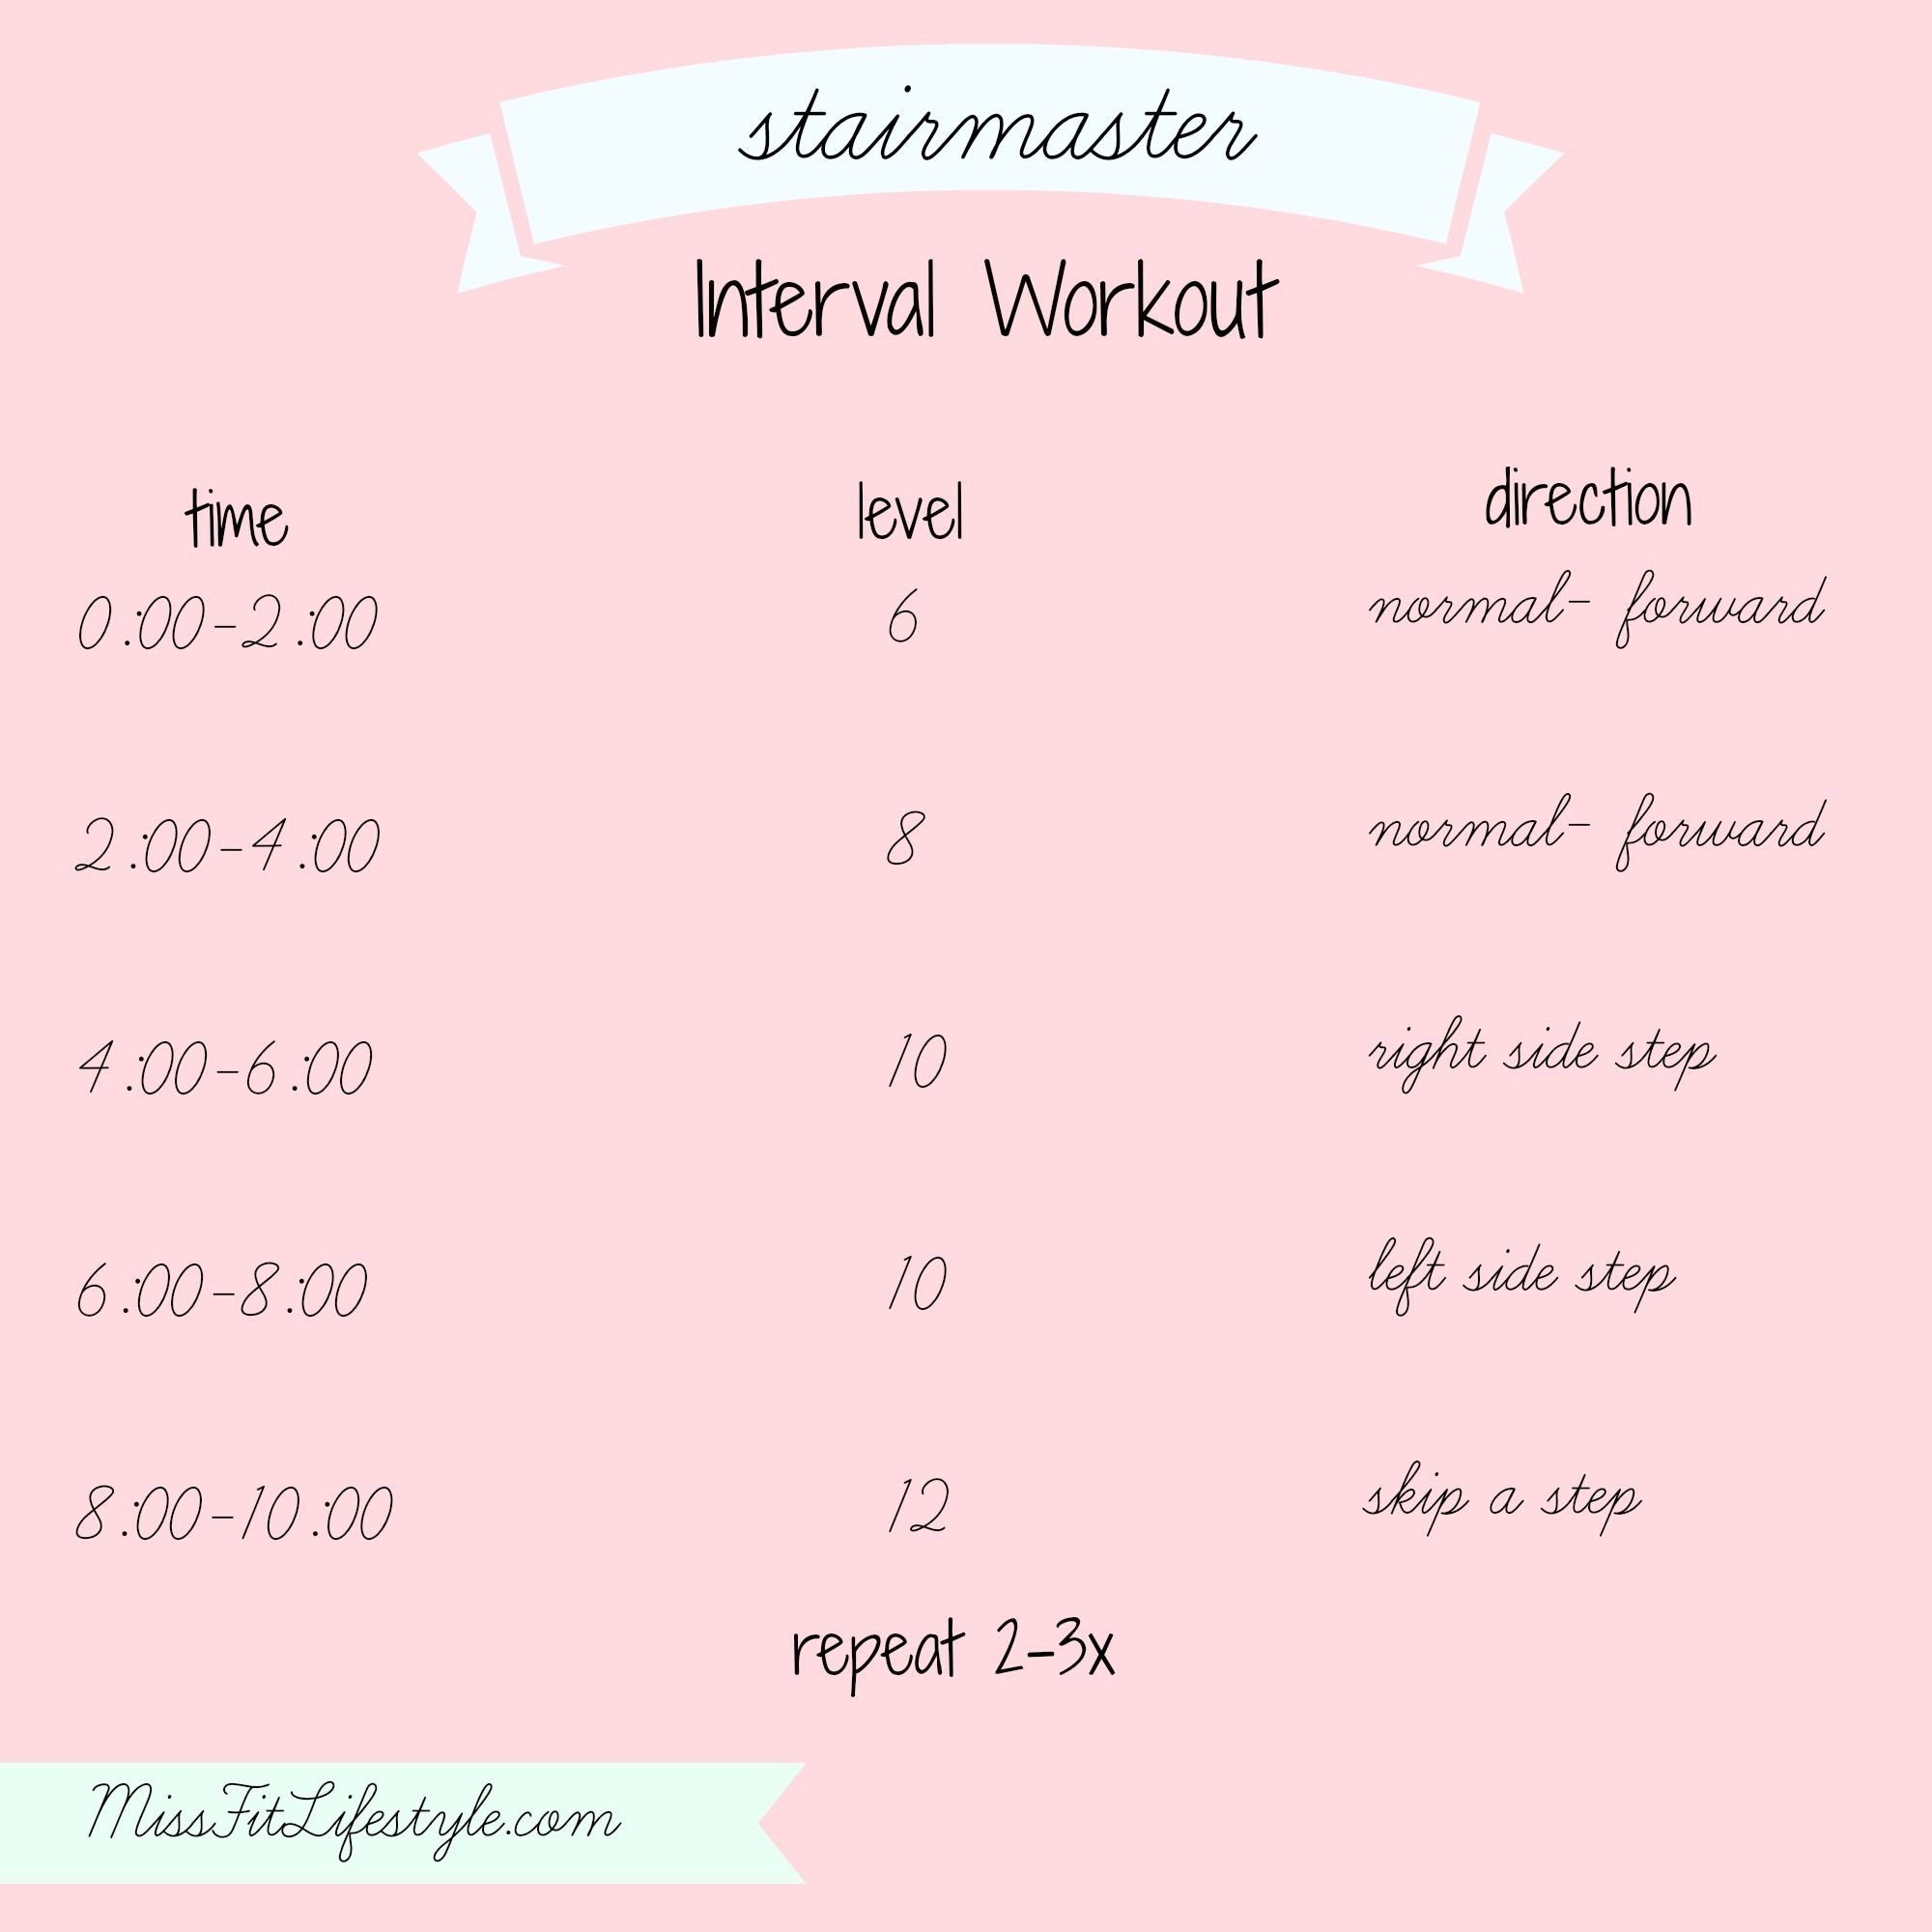 Stairmaster Interval Workout | Miss Fit Lifestyle: Fitness ...